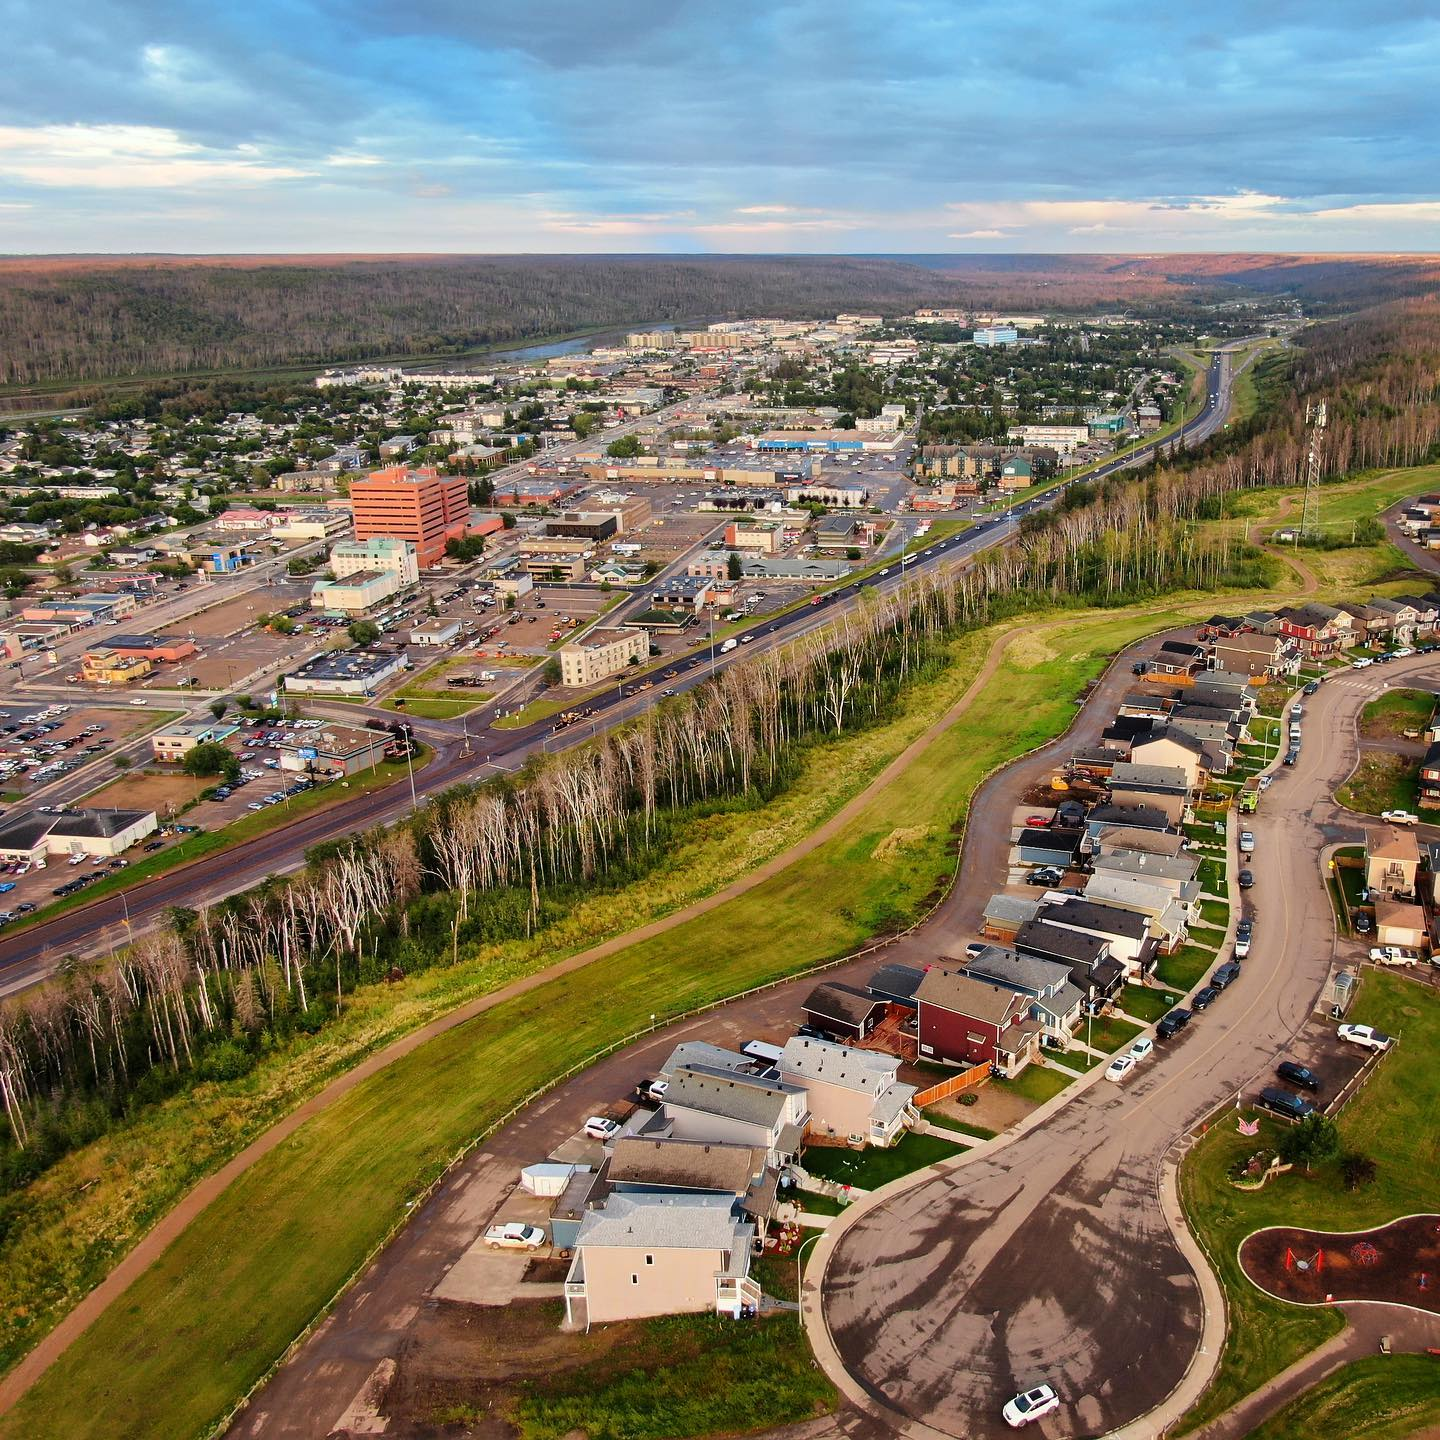 This is the reverse view of the previous shot.  Looking at Downtown Fort McMurray as seen from above Abasand.